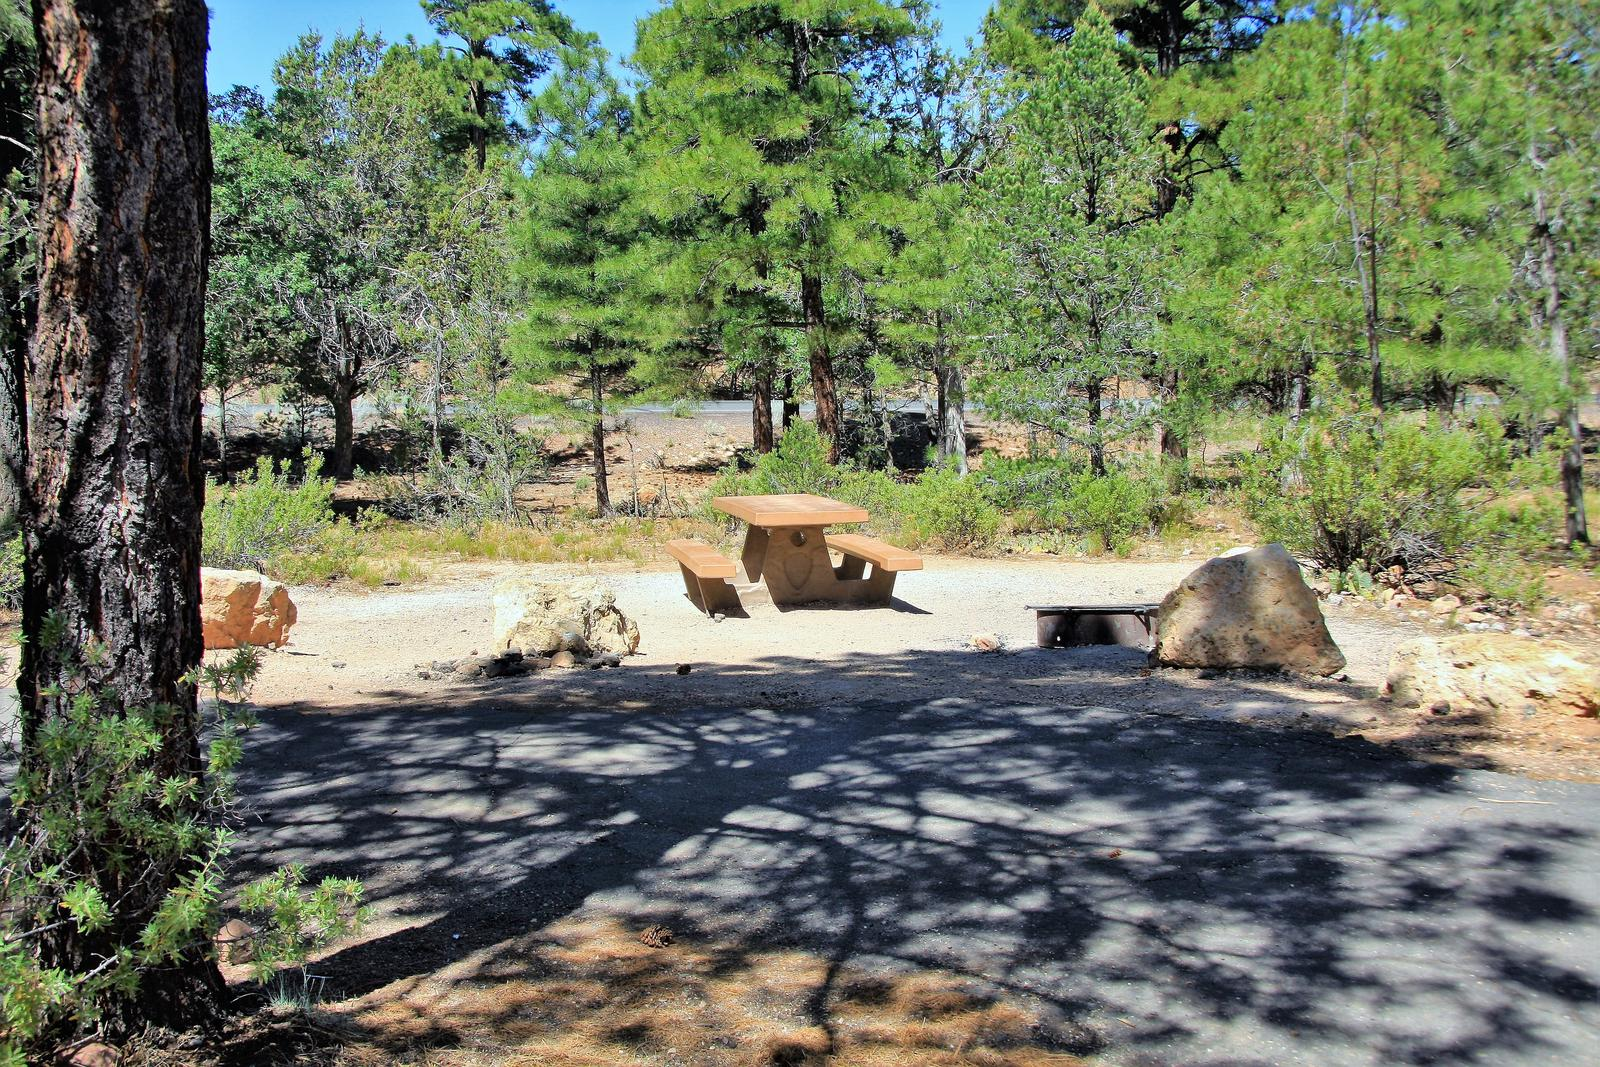 Picnic table, fire pit, and parking spot, Mather CampgroundThe picnic table, fire pit, and parking spot for Aspen Loop 35, Mather Campground